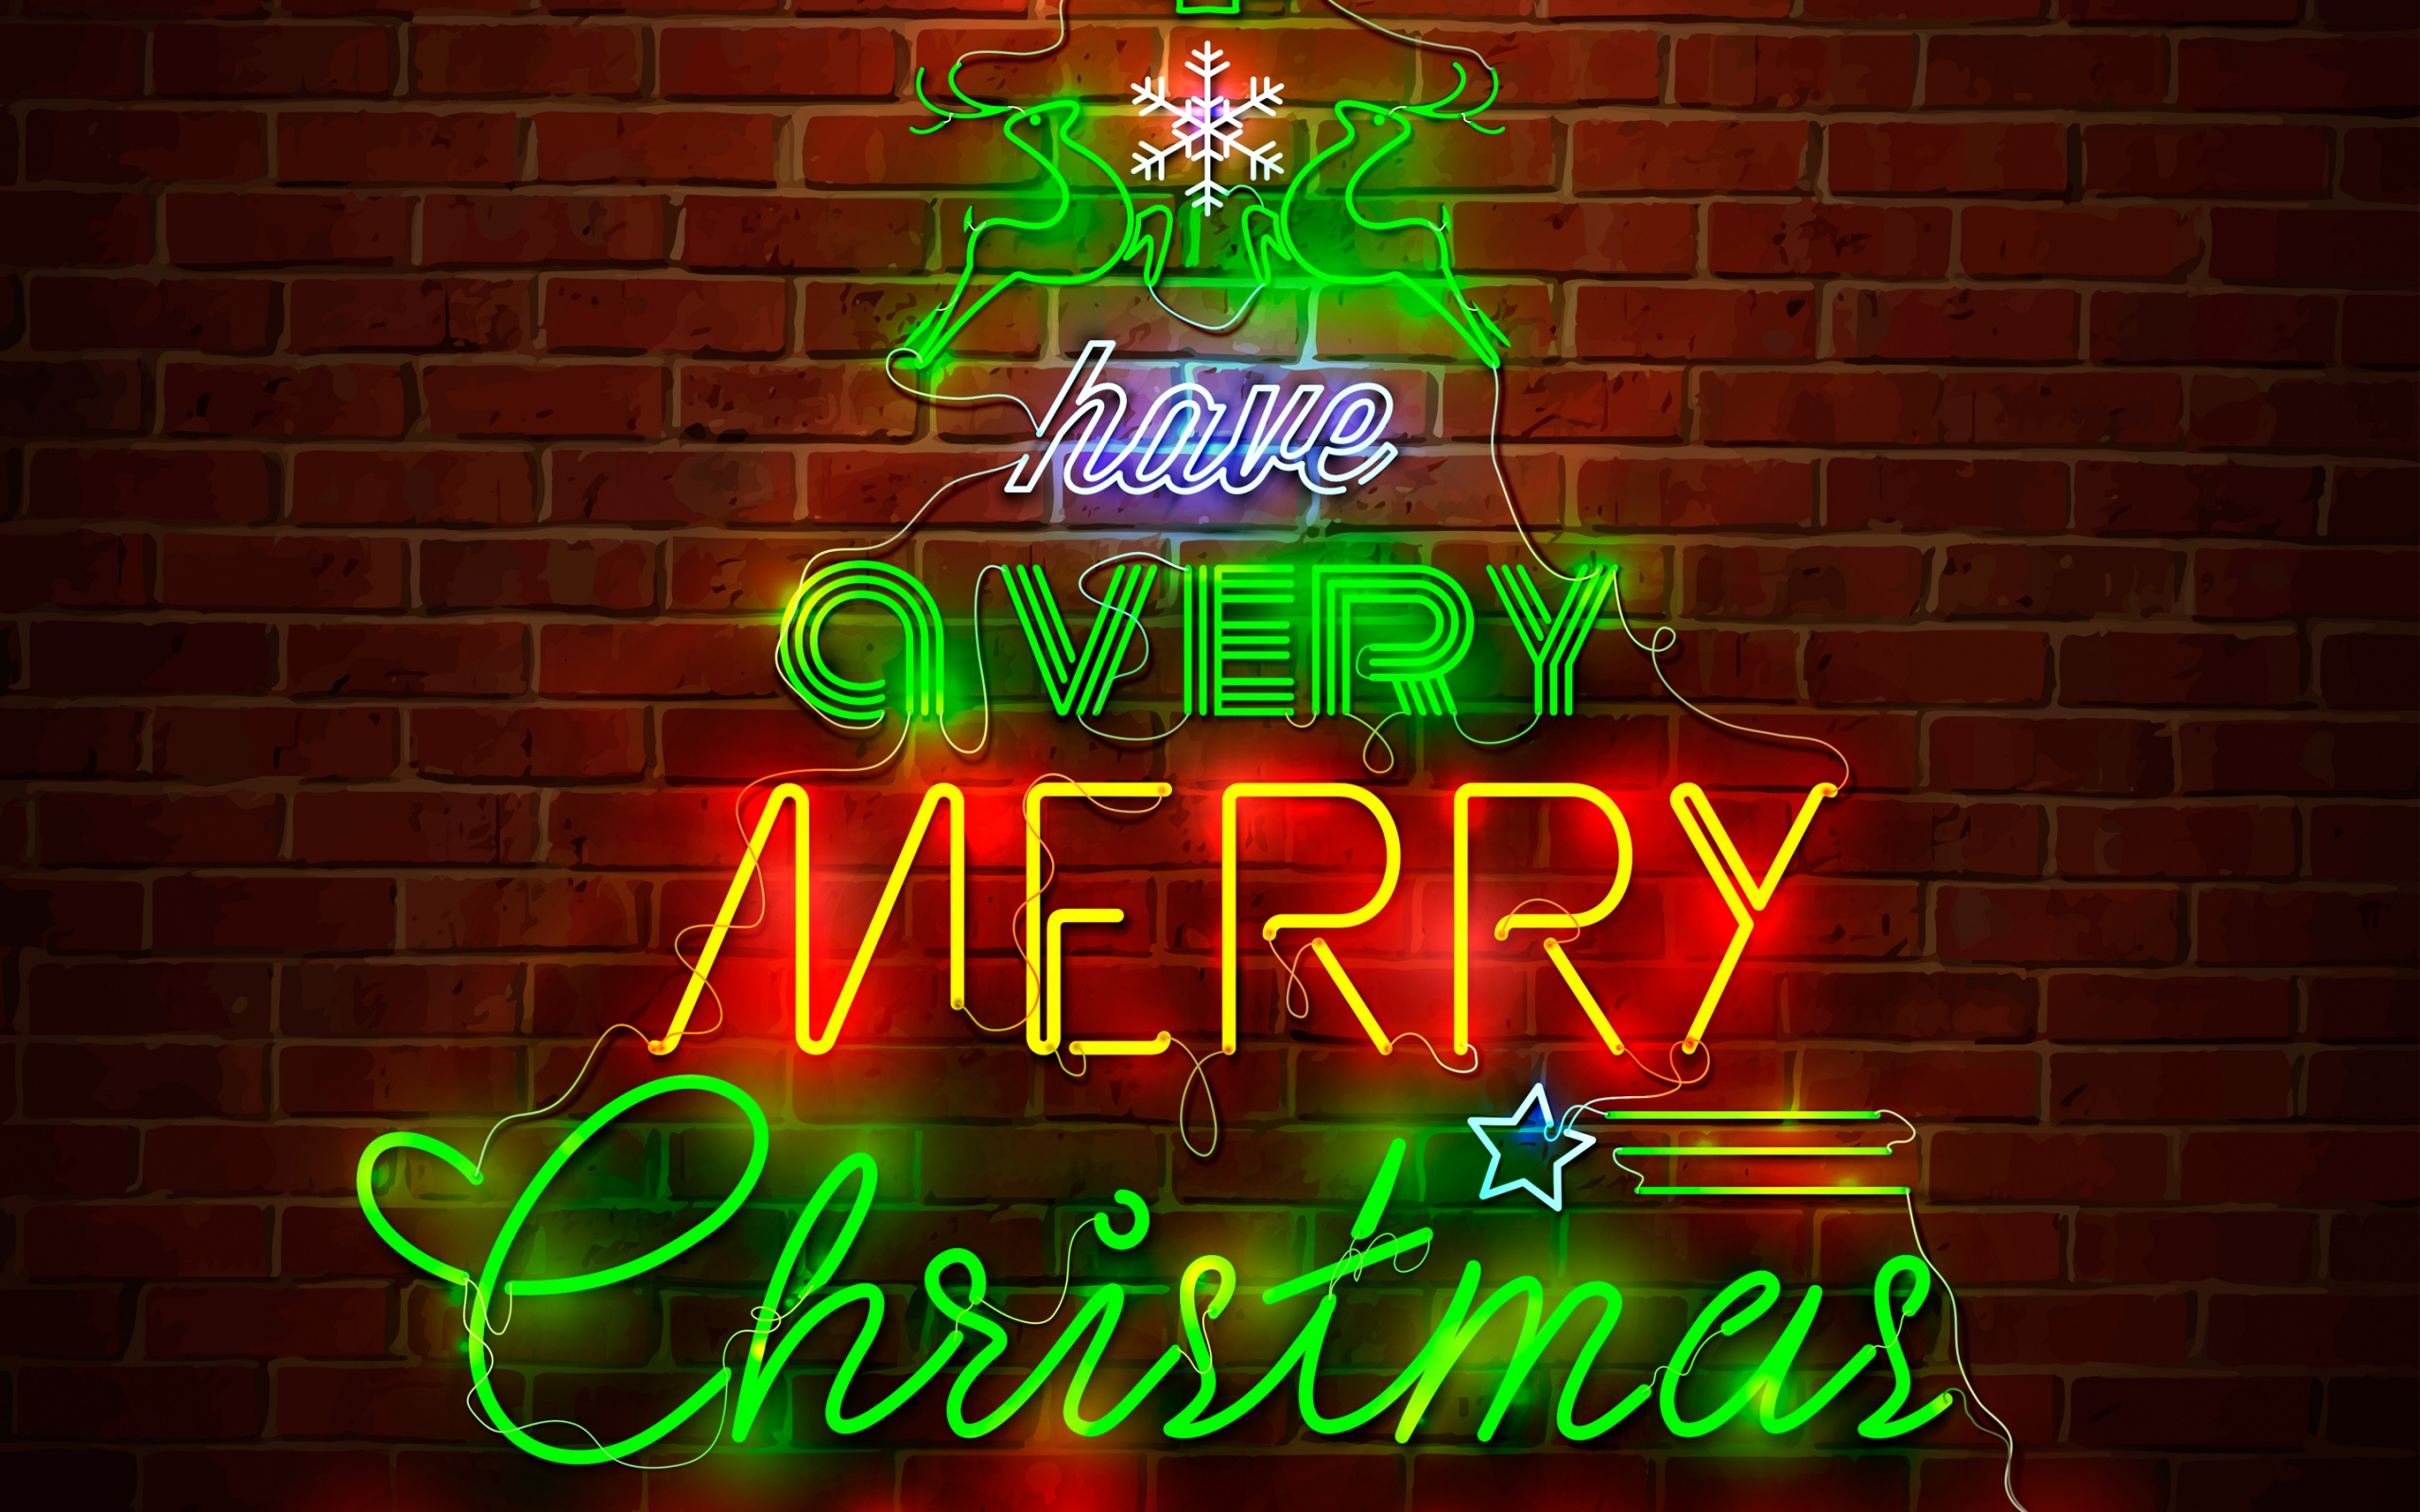 ¨Have a very merry Christmas¨ text and festive elements neon sign on a brick wall.